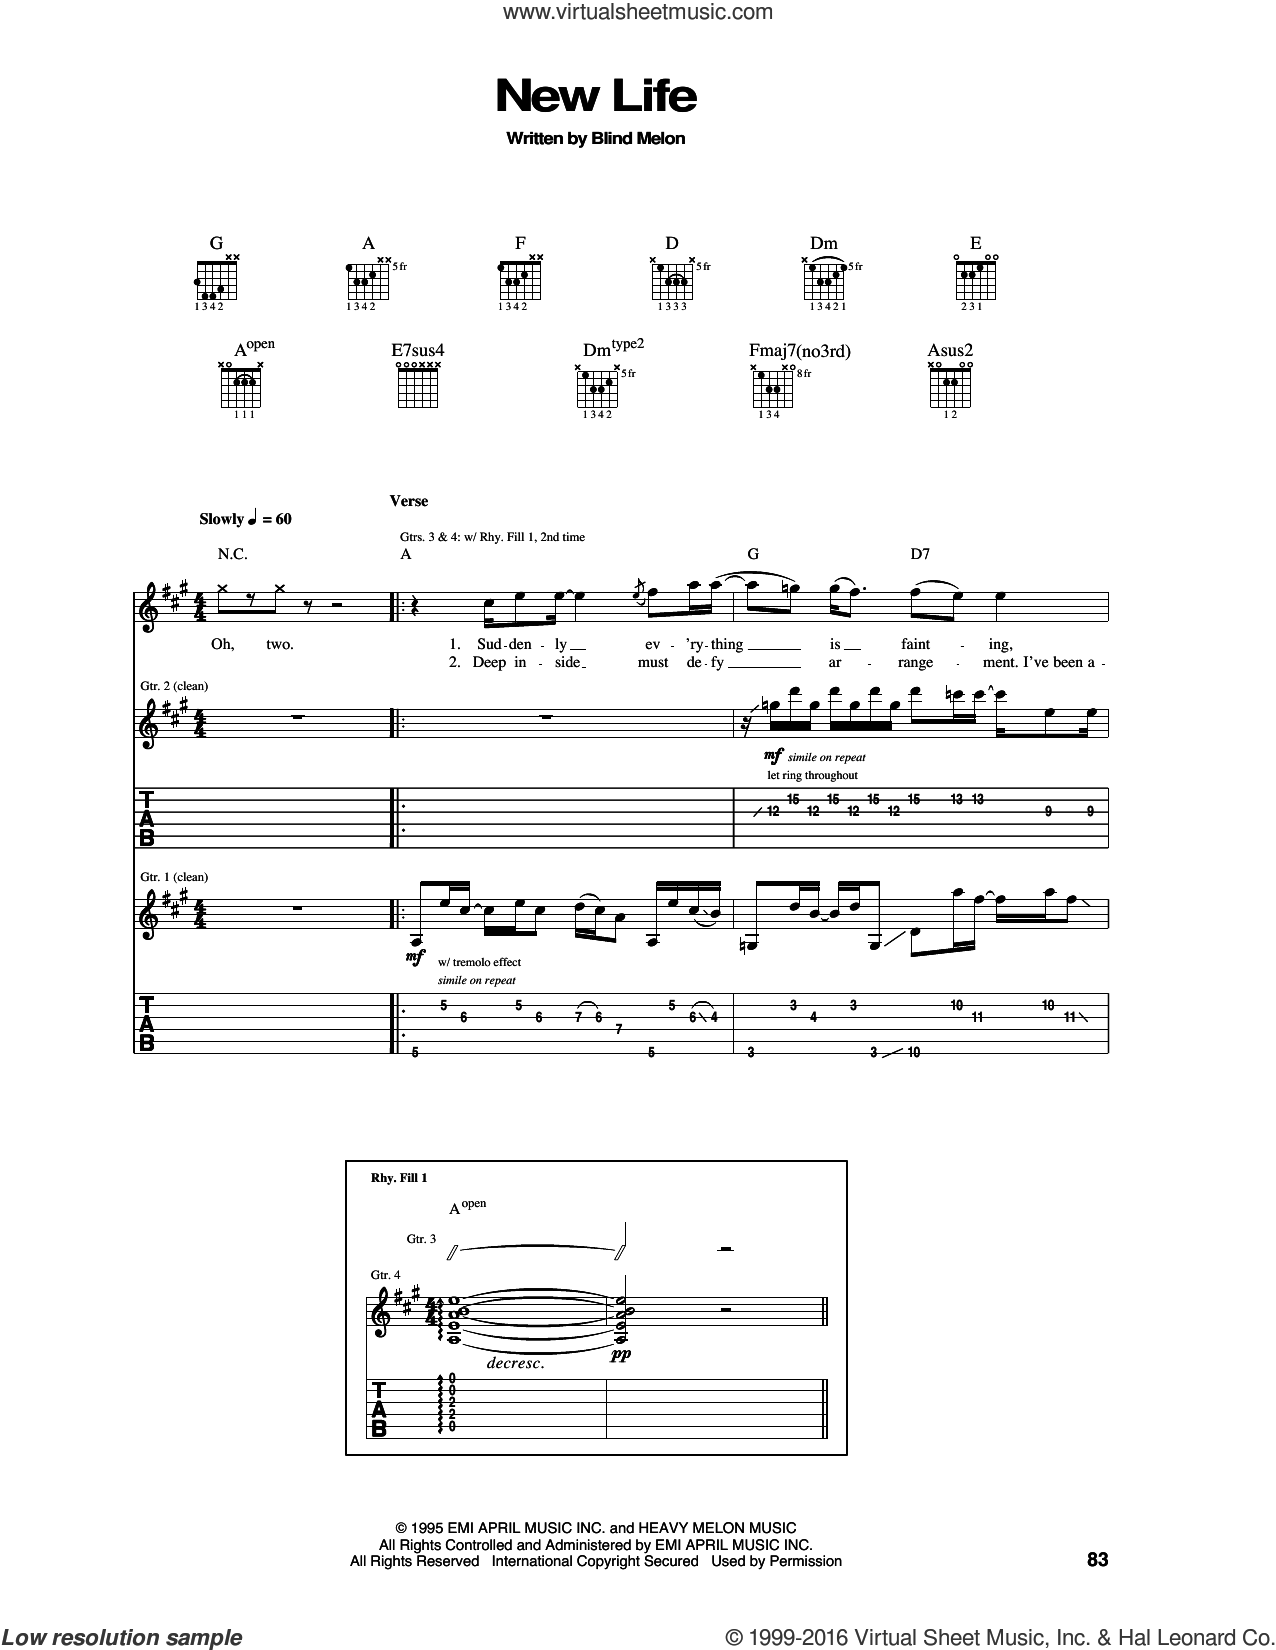 New Life sheet music for guitar (tablature) by Blind Melon